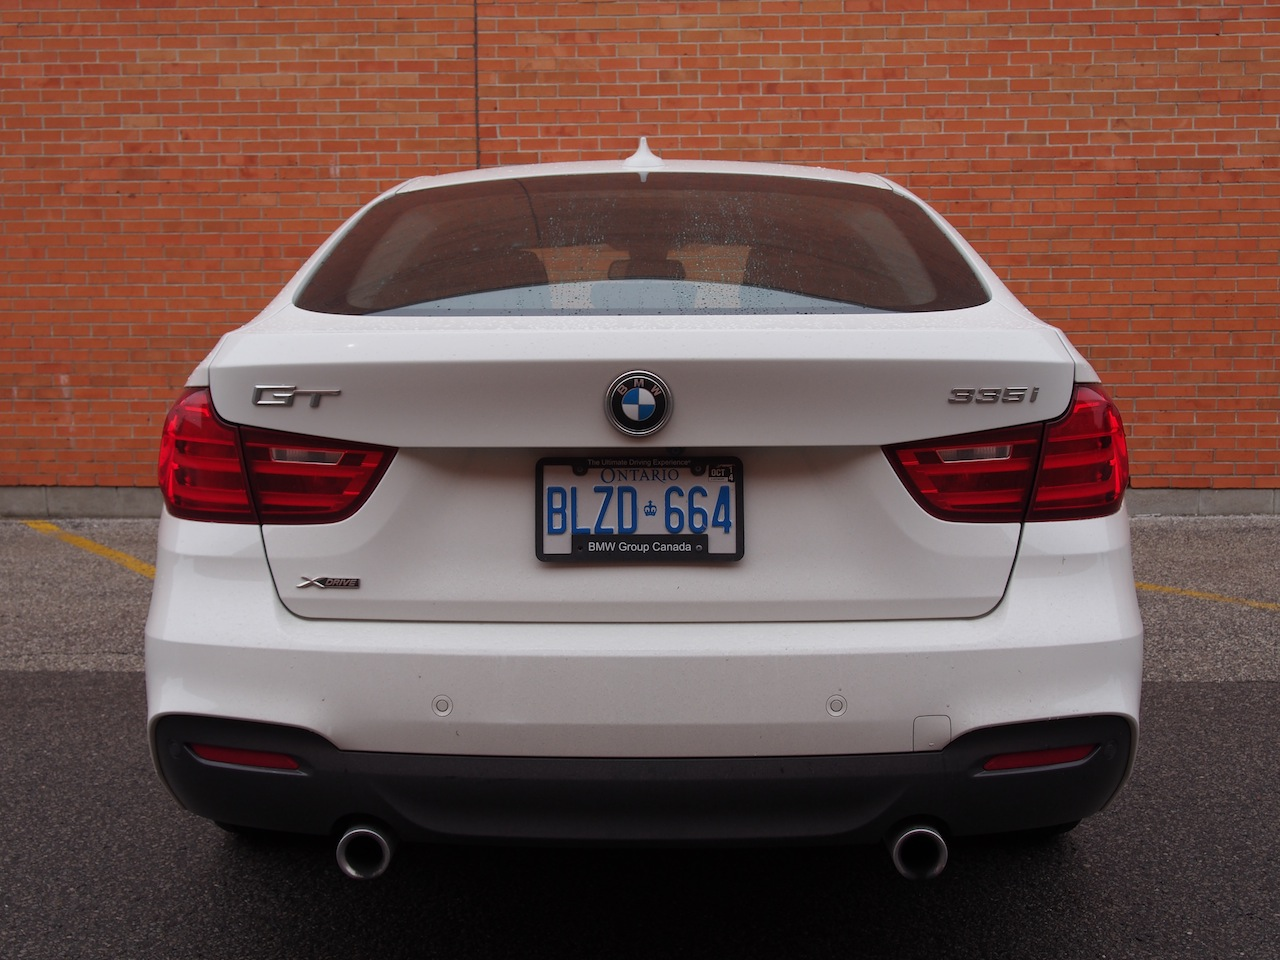 2014 Bmw 335i Gt Xdrive Review Cars Photos Test Drives